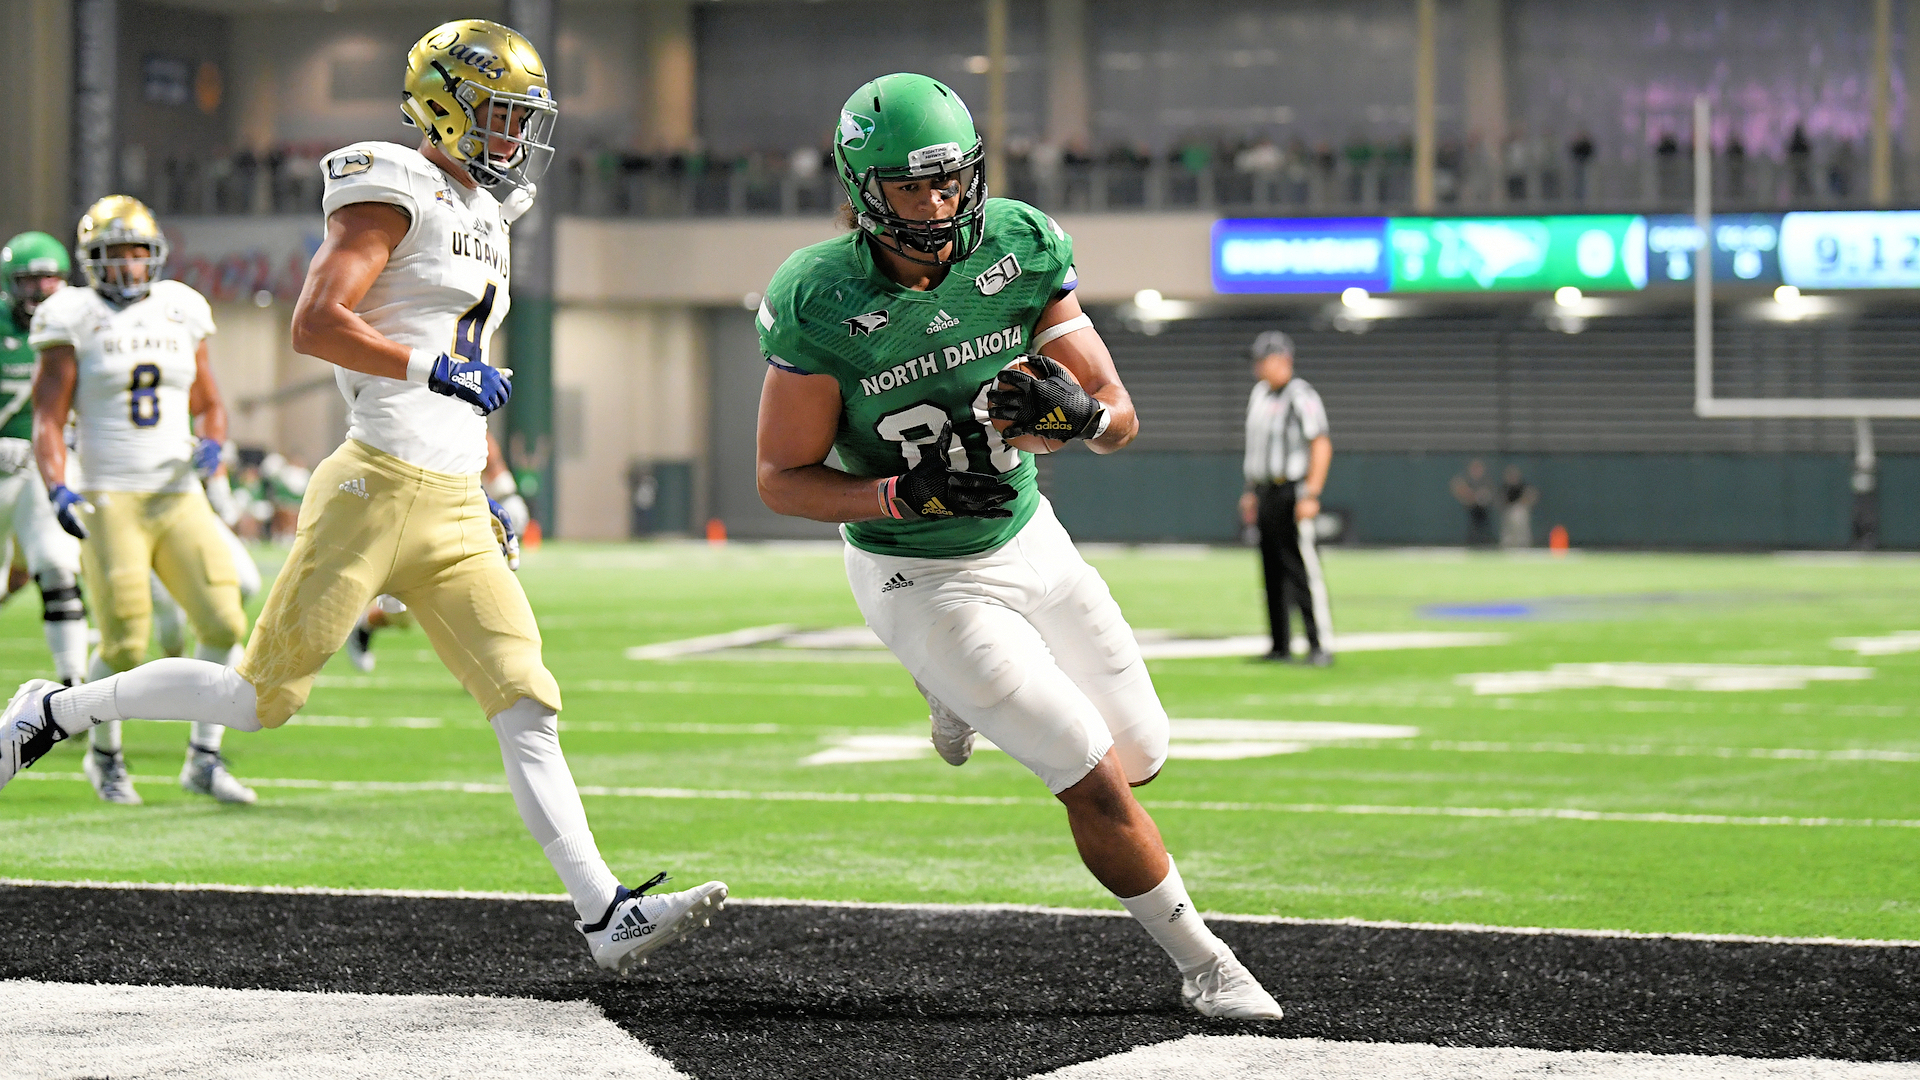 NCAA FCS Football 2019: UC Davis vs North Dakota OCT 05